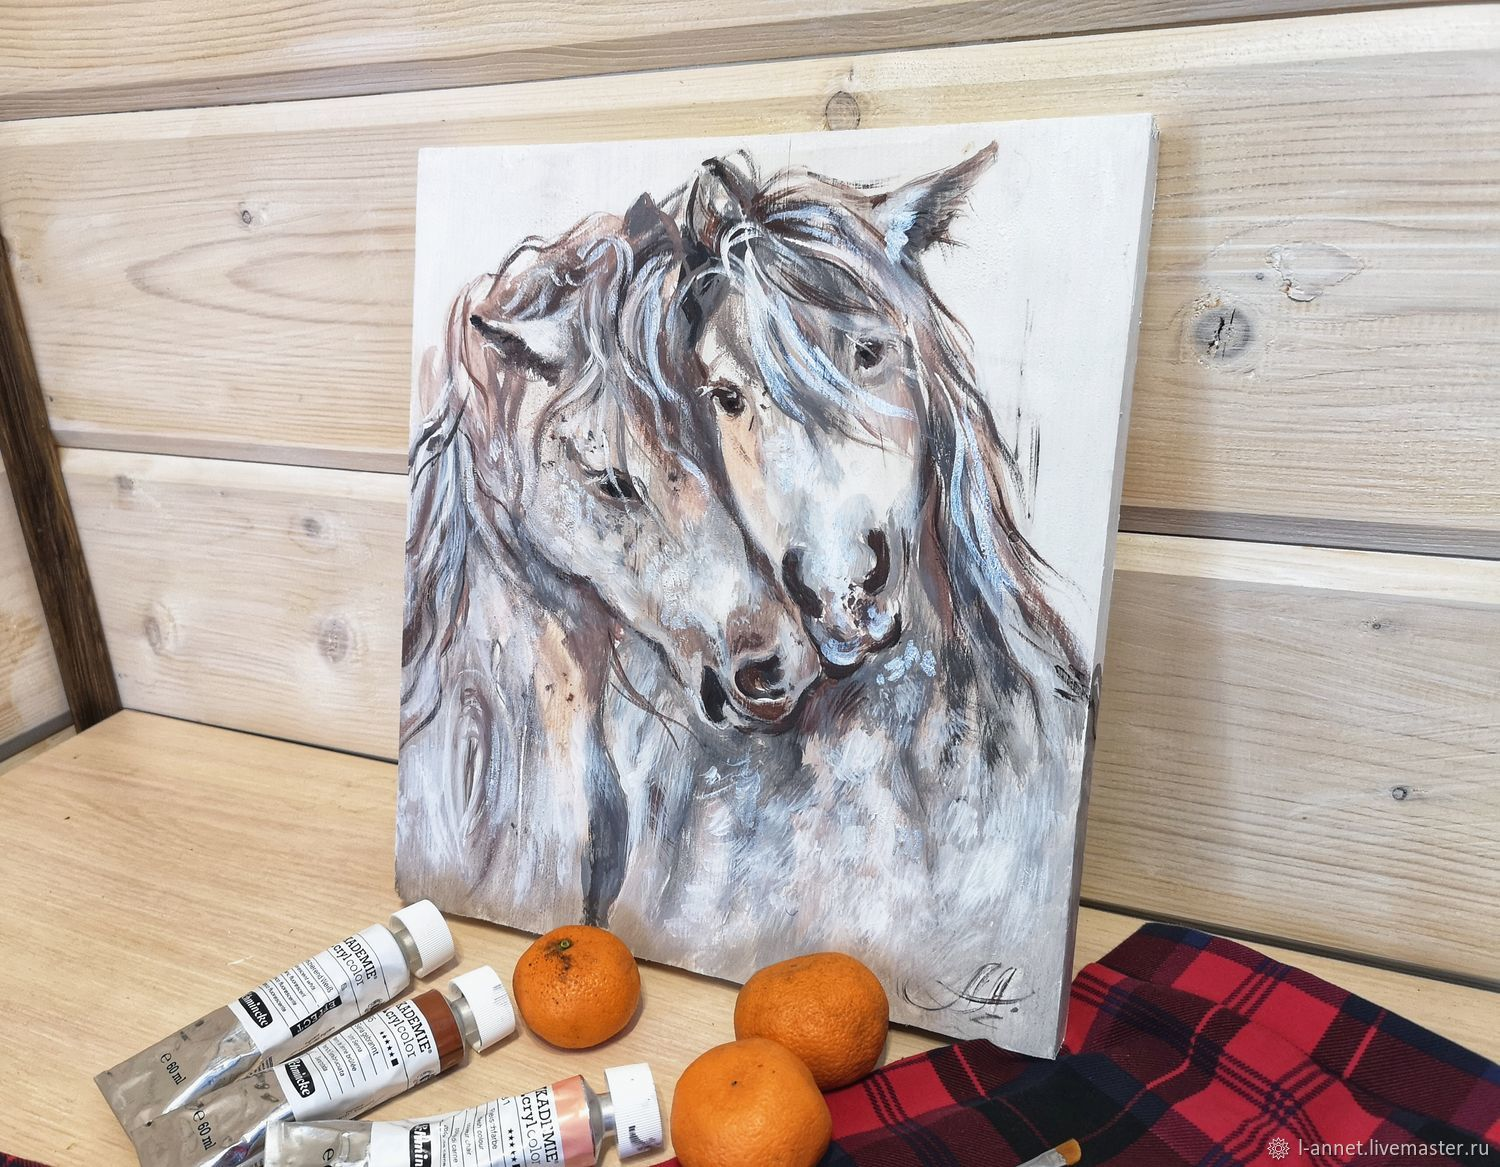 Painting with horses, Tenderness for two, painting on a tree, Pictures, Moscow,  Фото №1